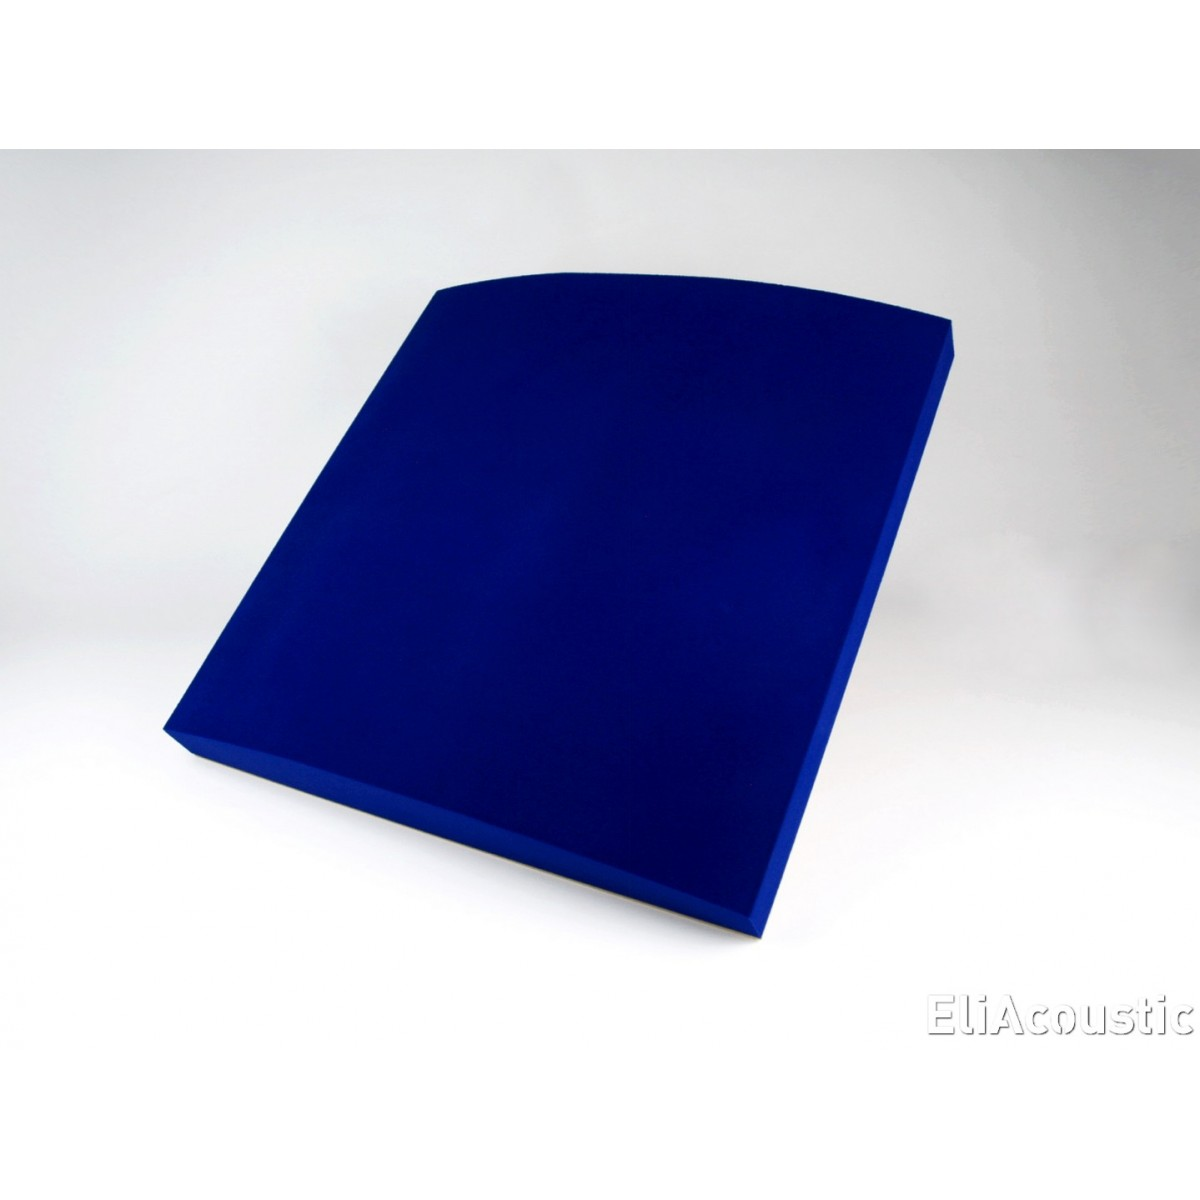 EliAcoustic Curve 60 Premiere Blue (Ref 707). Panel acustico decorativo